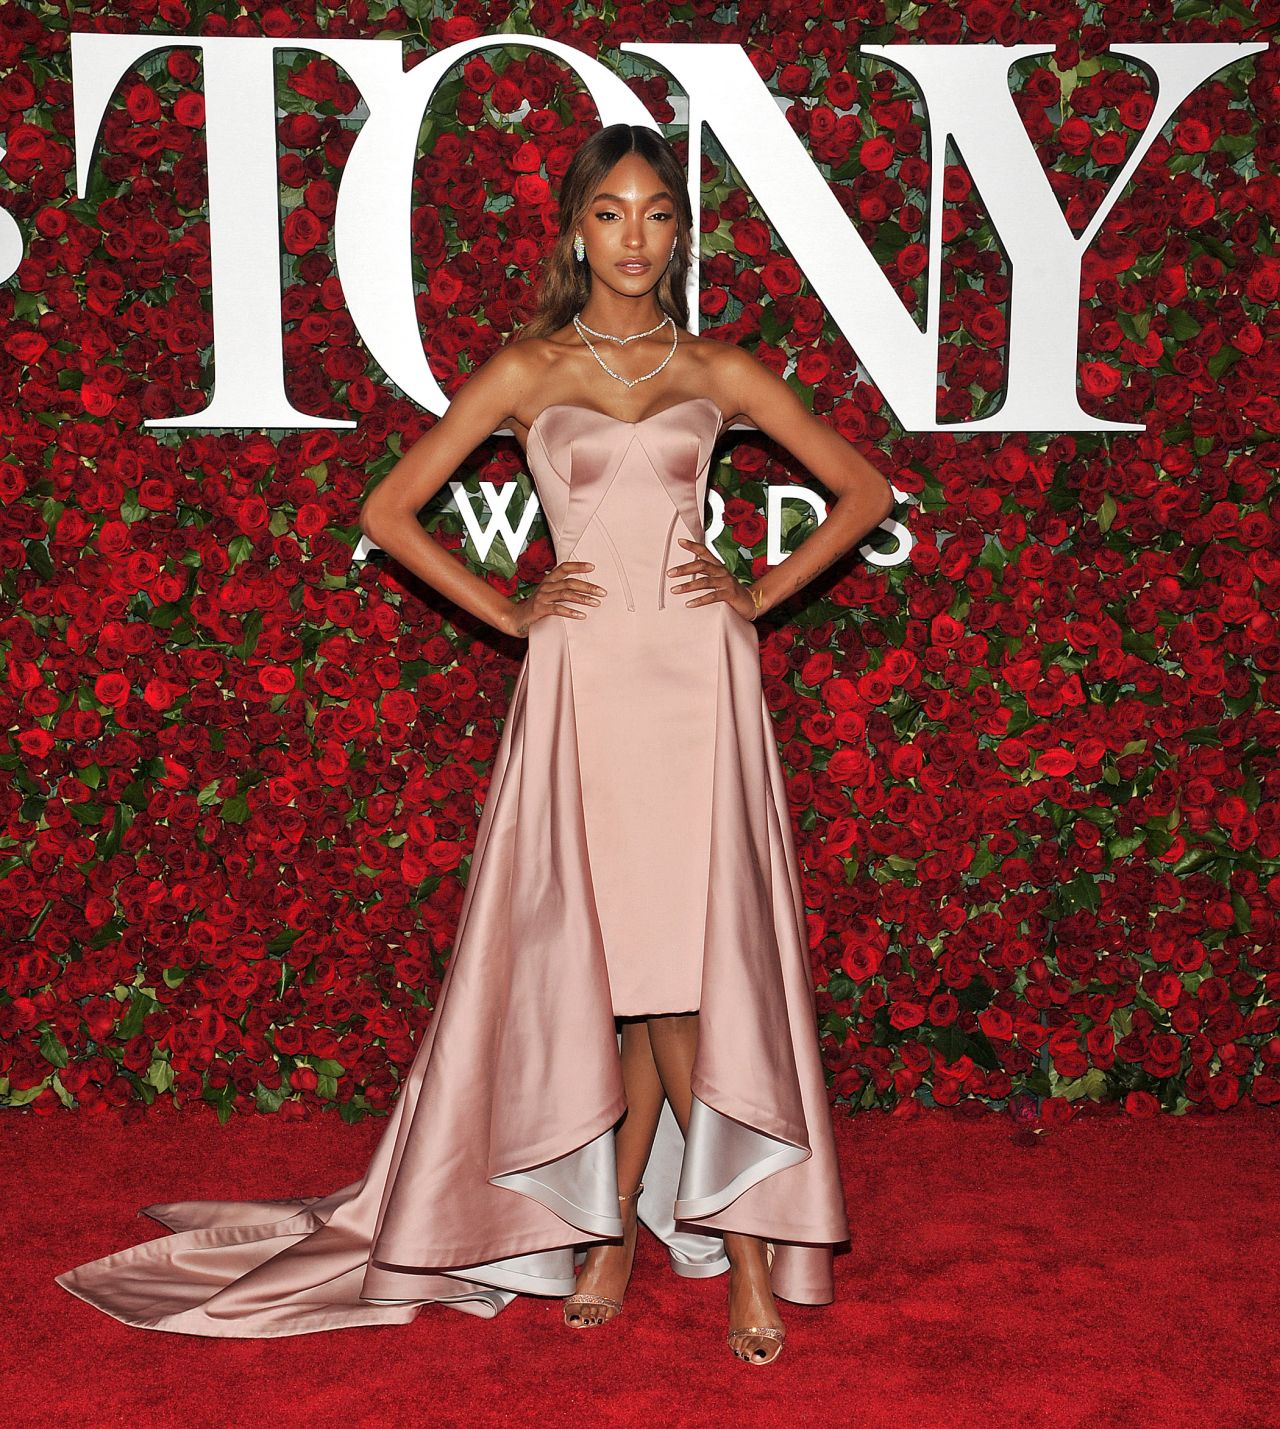 Jourdan Dunn bares cleavage in a strapless gown at the 2016 Tony Awards in NY